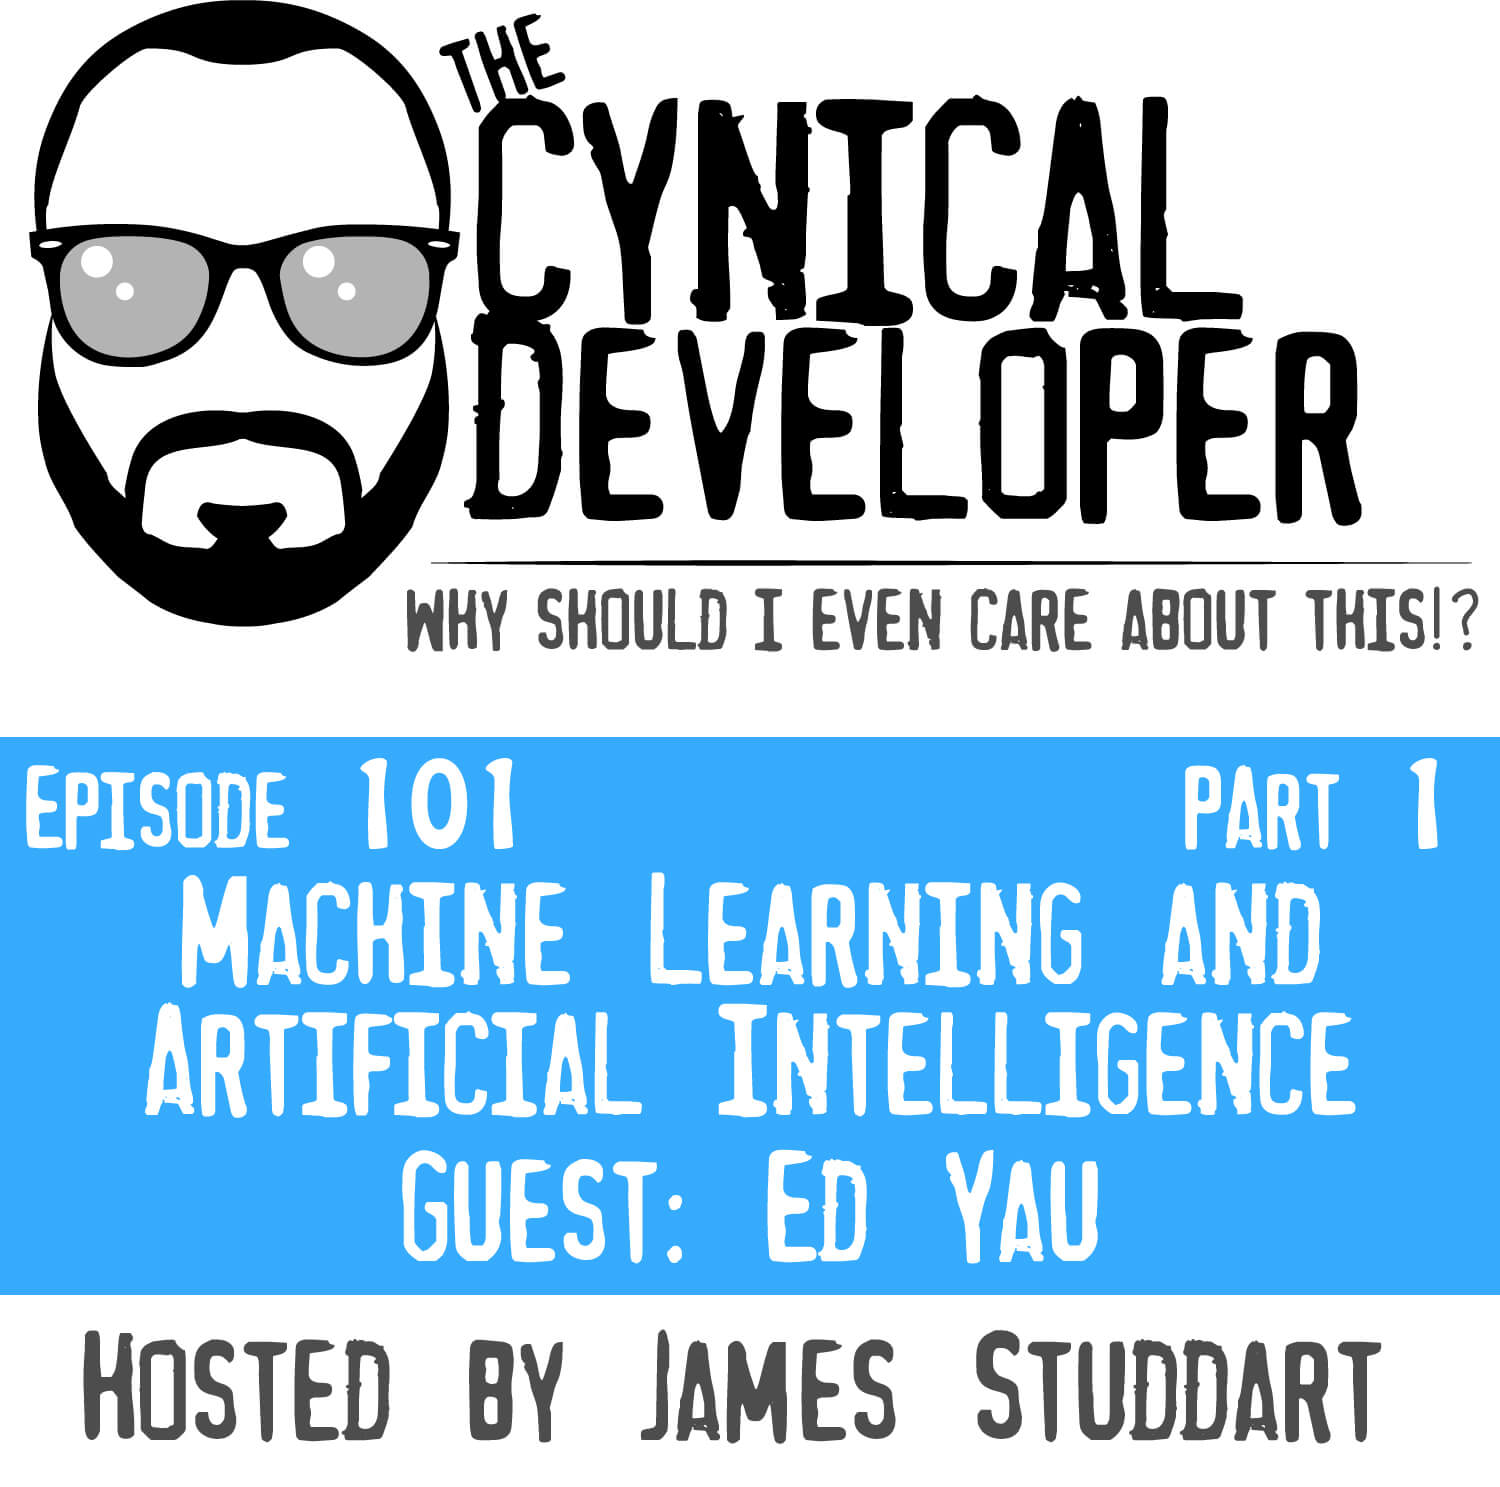 Episode 101 - Machine Learning and Artificial Intelligence (Part 1)